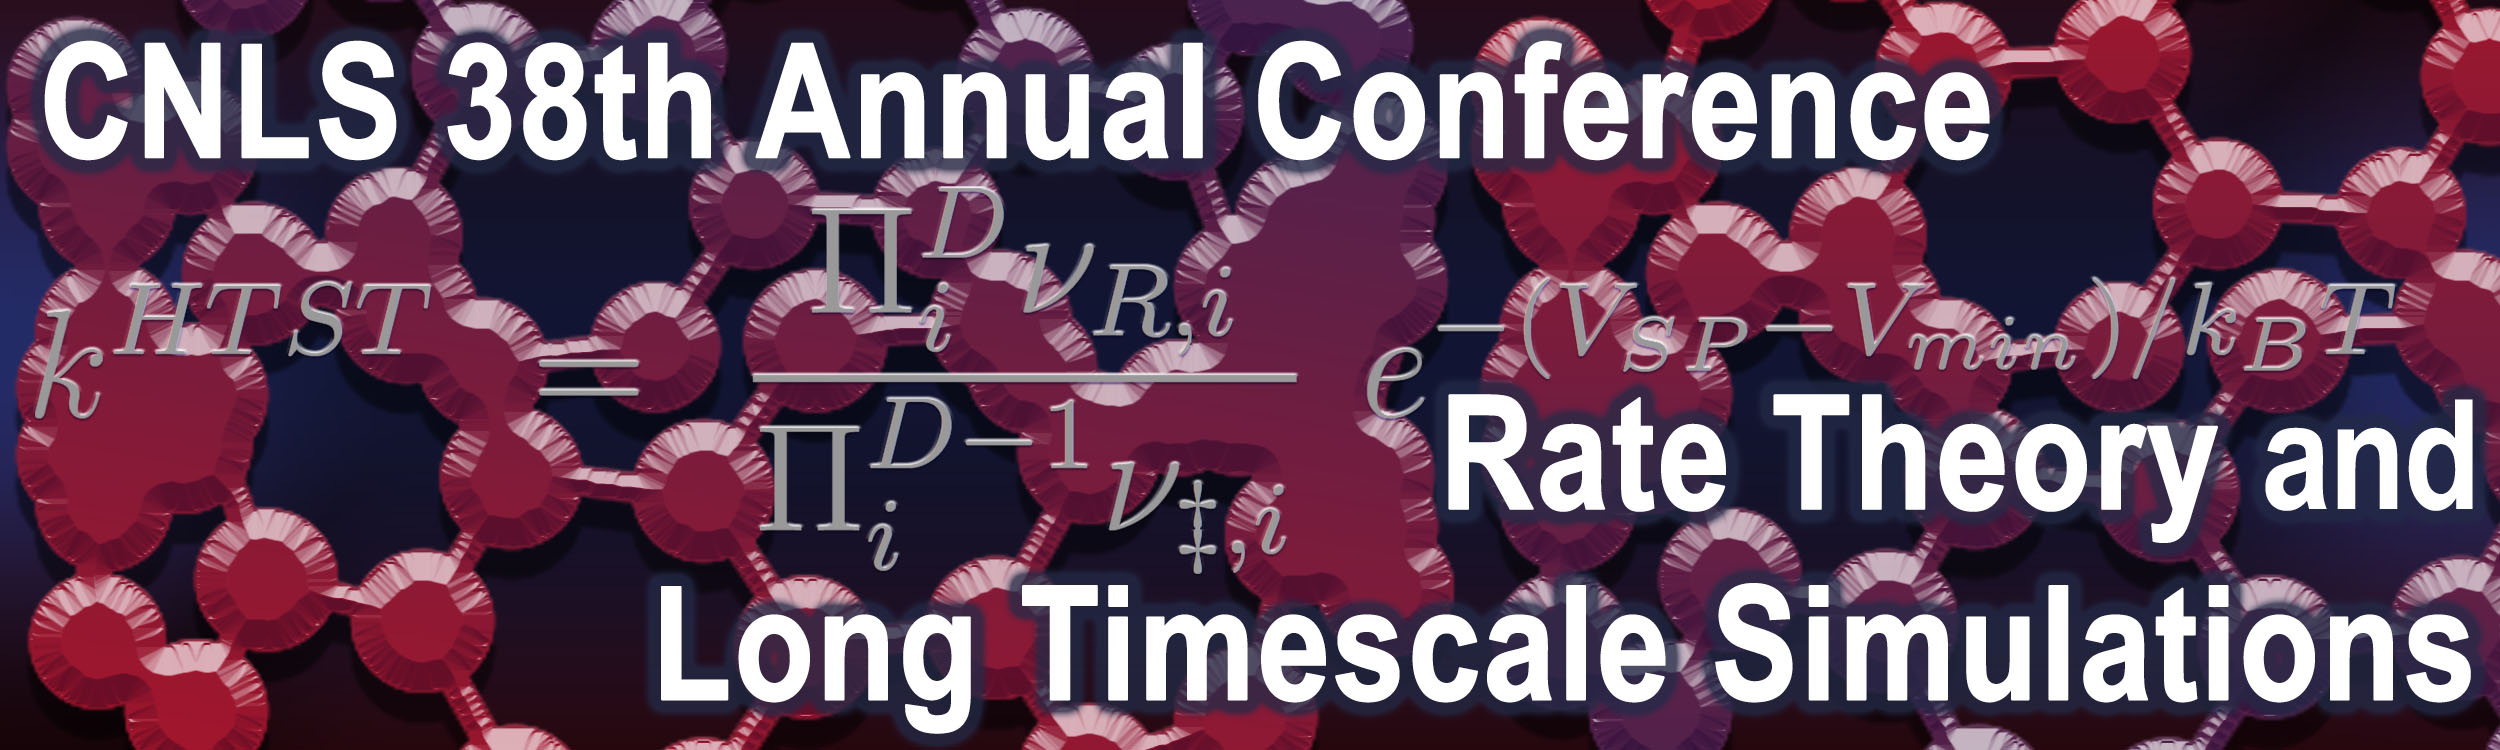 38th CNLS Annual Conference- Rate Theory and Long Timescale Simulations